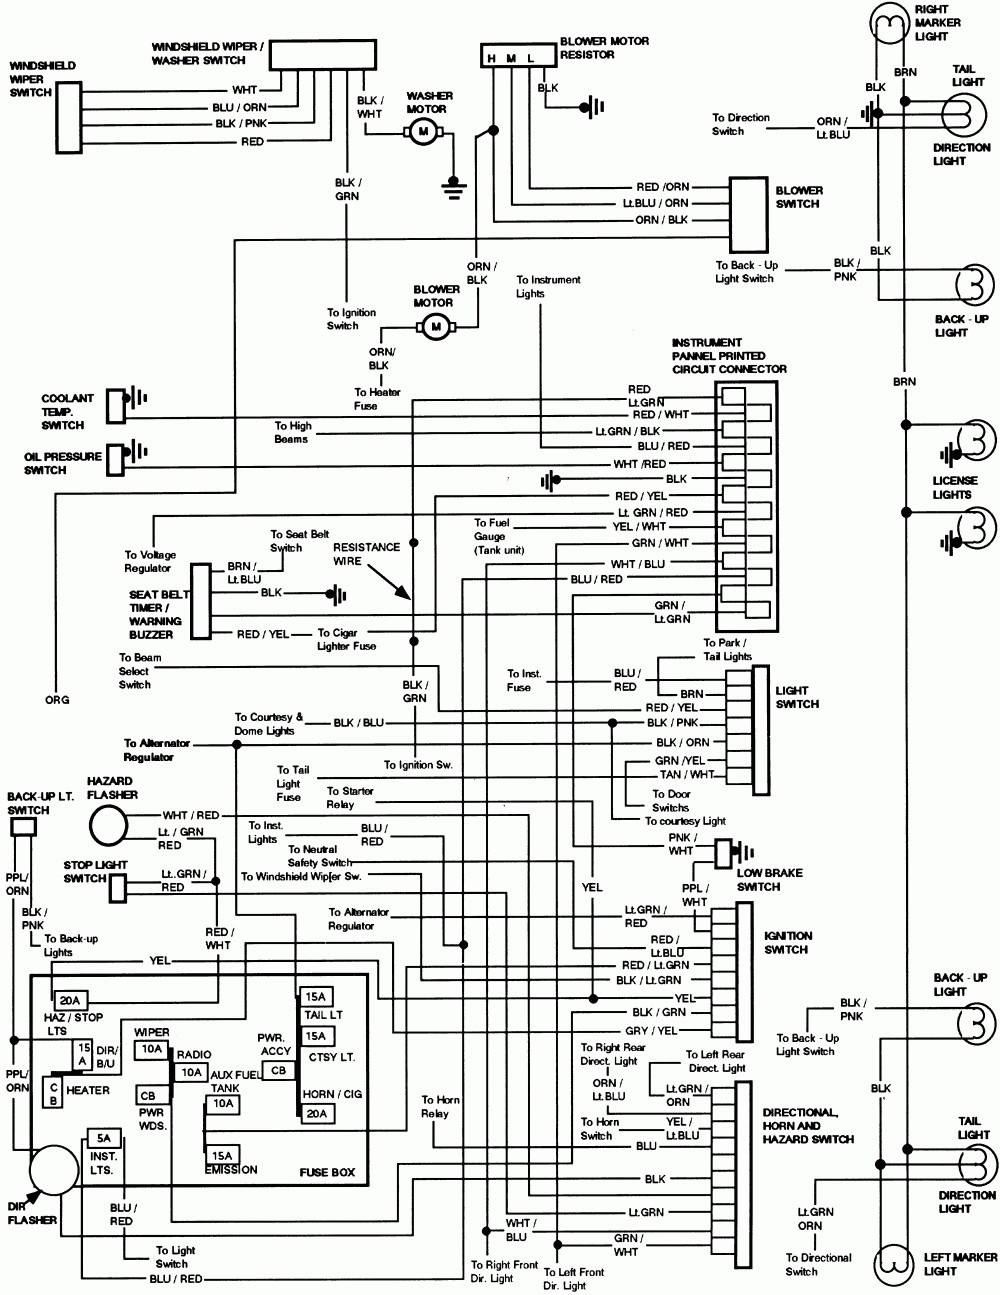 medium resolution of 1975 ford f 250 ignition wiring diagram data wiring diagram wiring diagram for 1974 ford f250